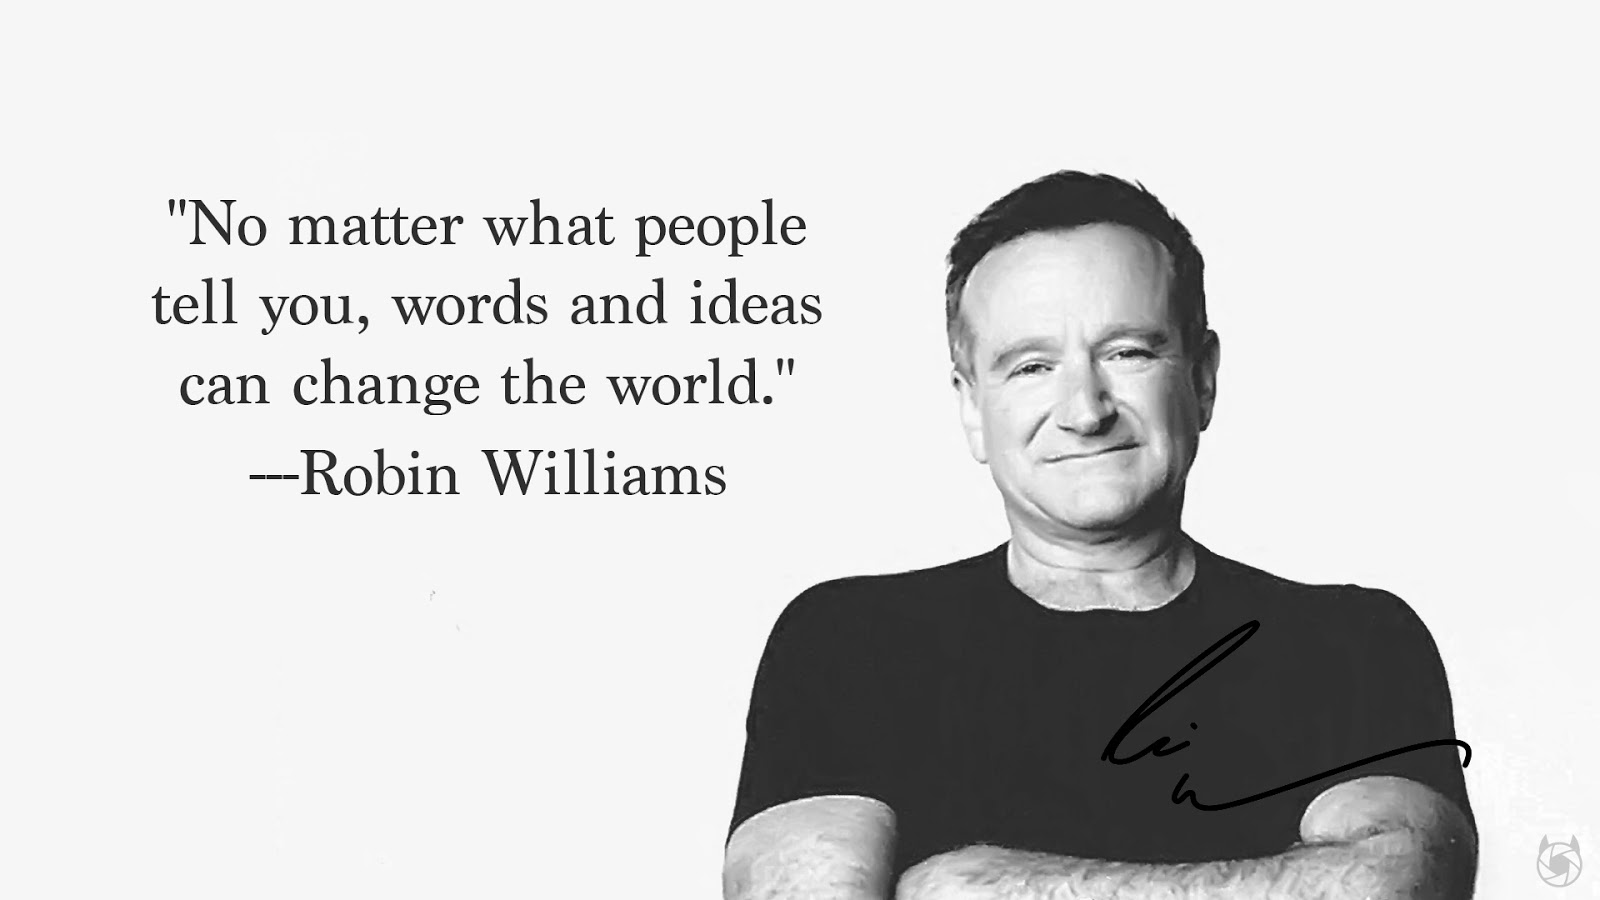 Robin Williams Quotes About Life Your Words & Ideas Do Matter  Shane Cradock